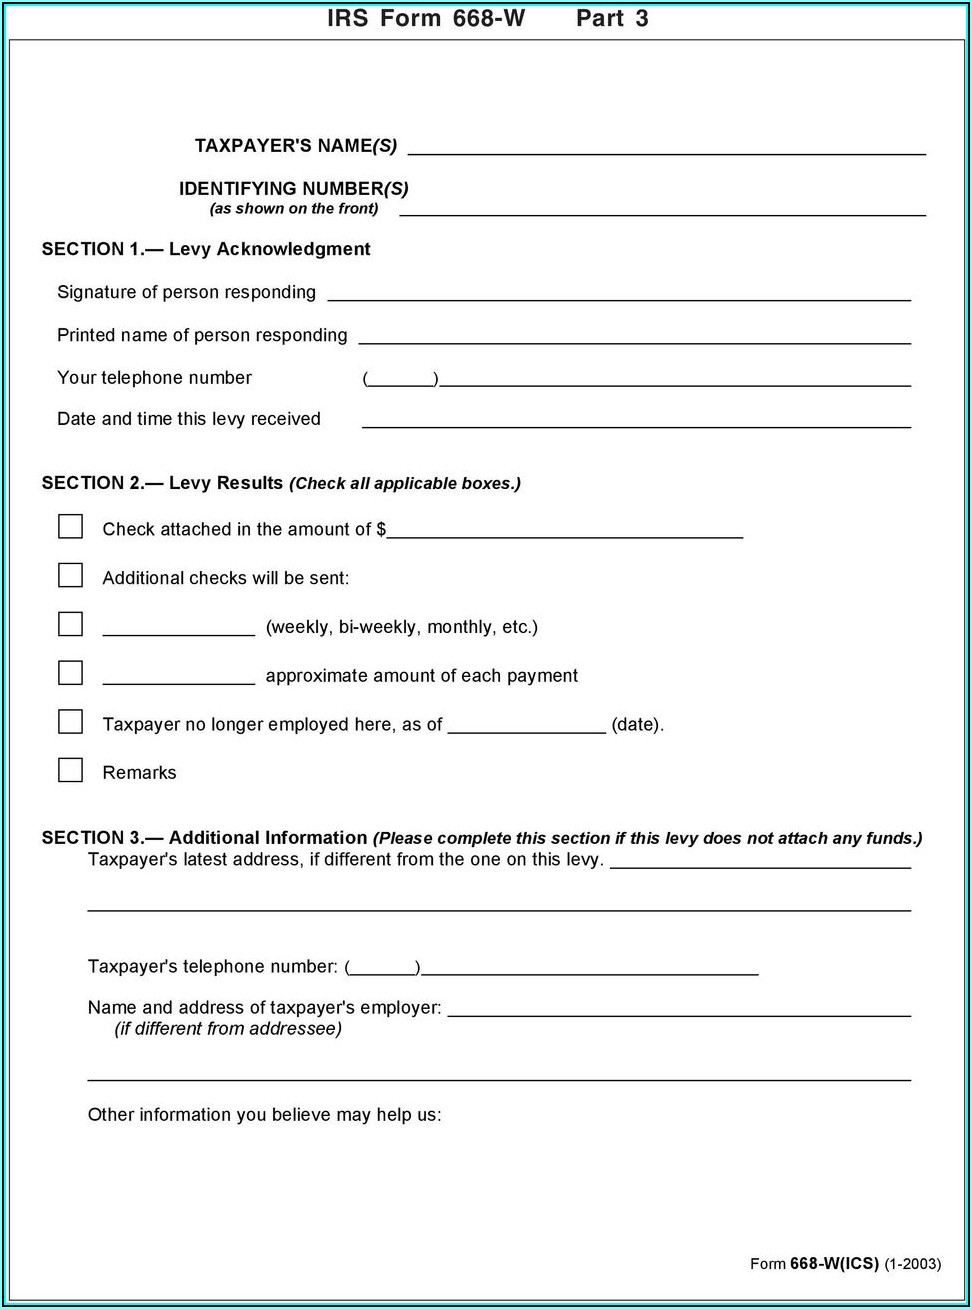 Irs Form 668 W Part 5